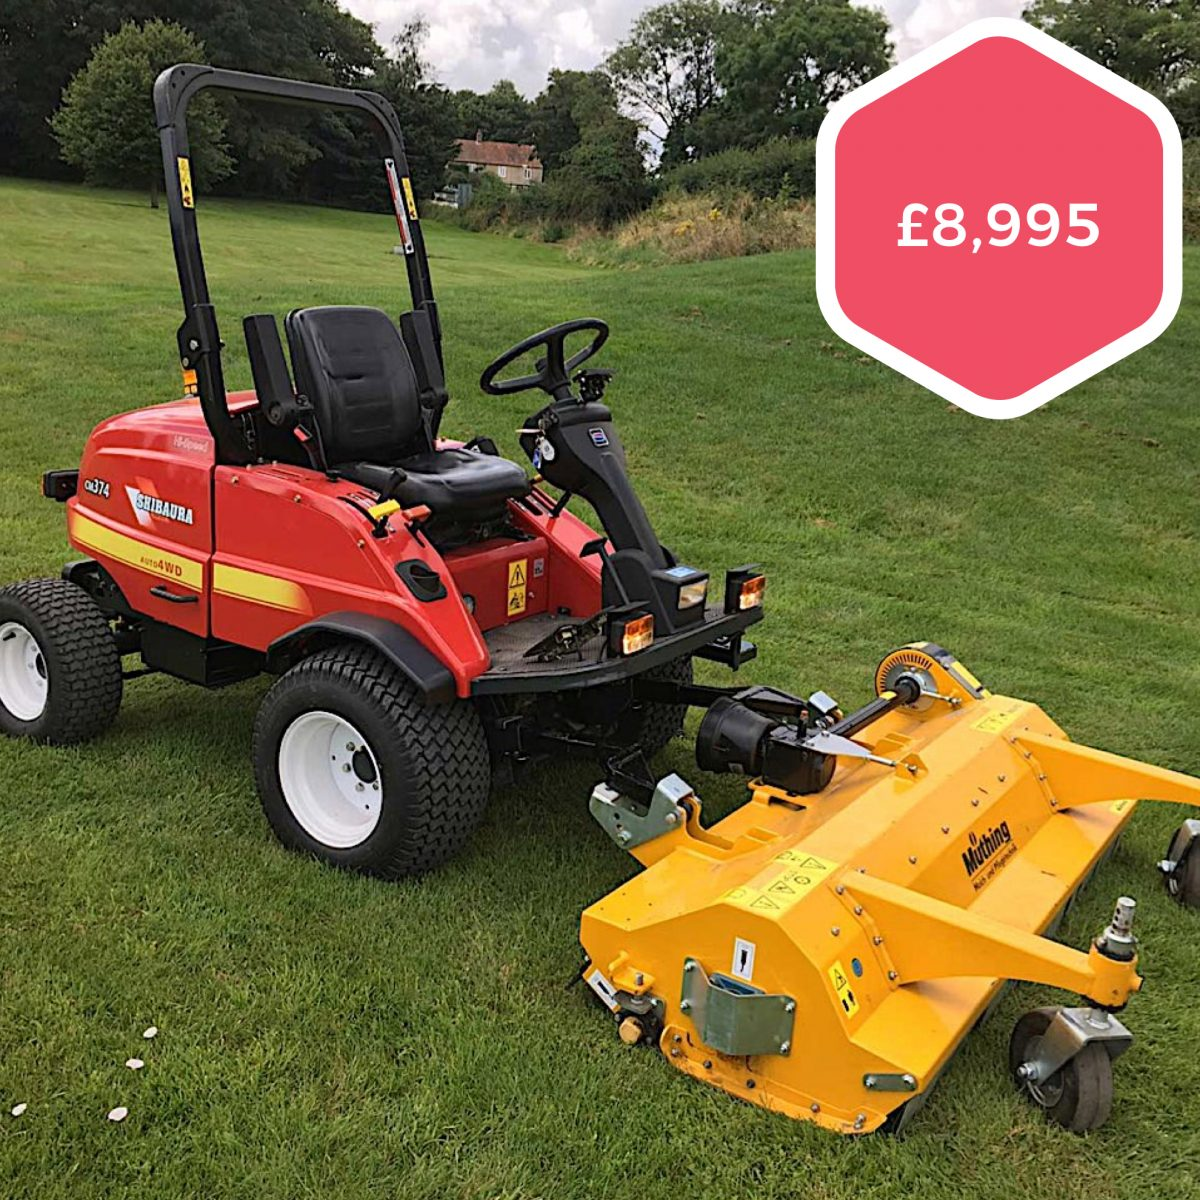 Shibaura CM374 Out-front Flail Mower